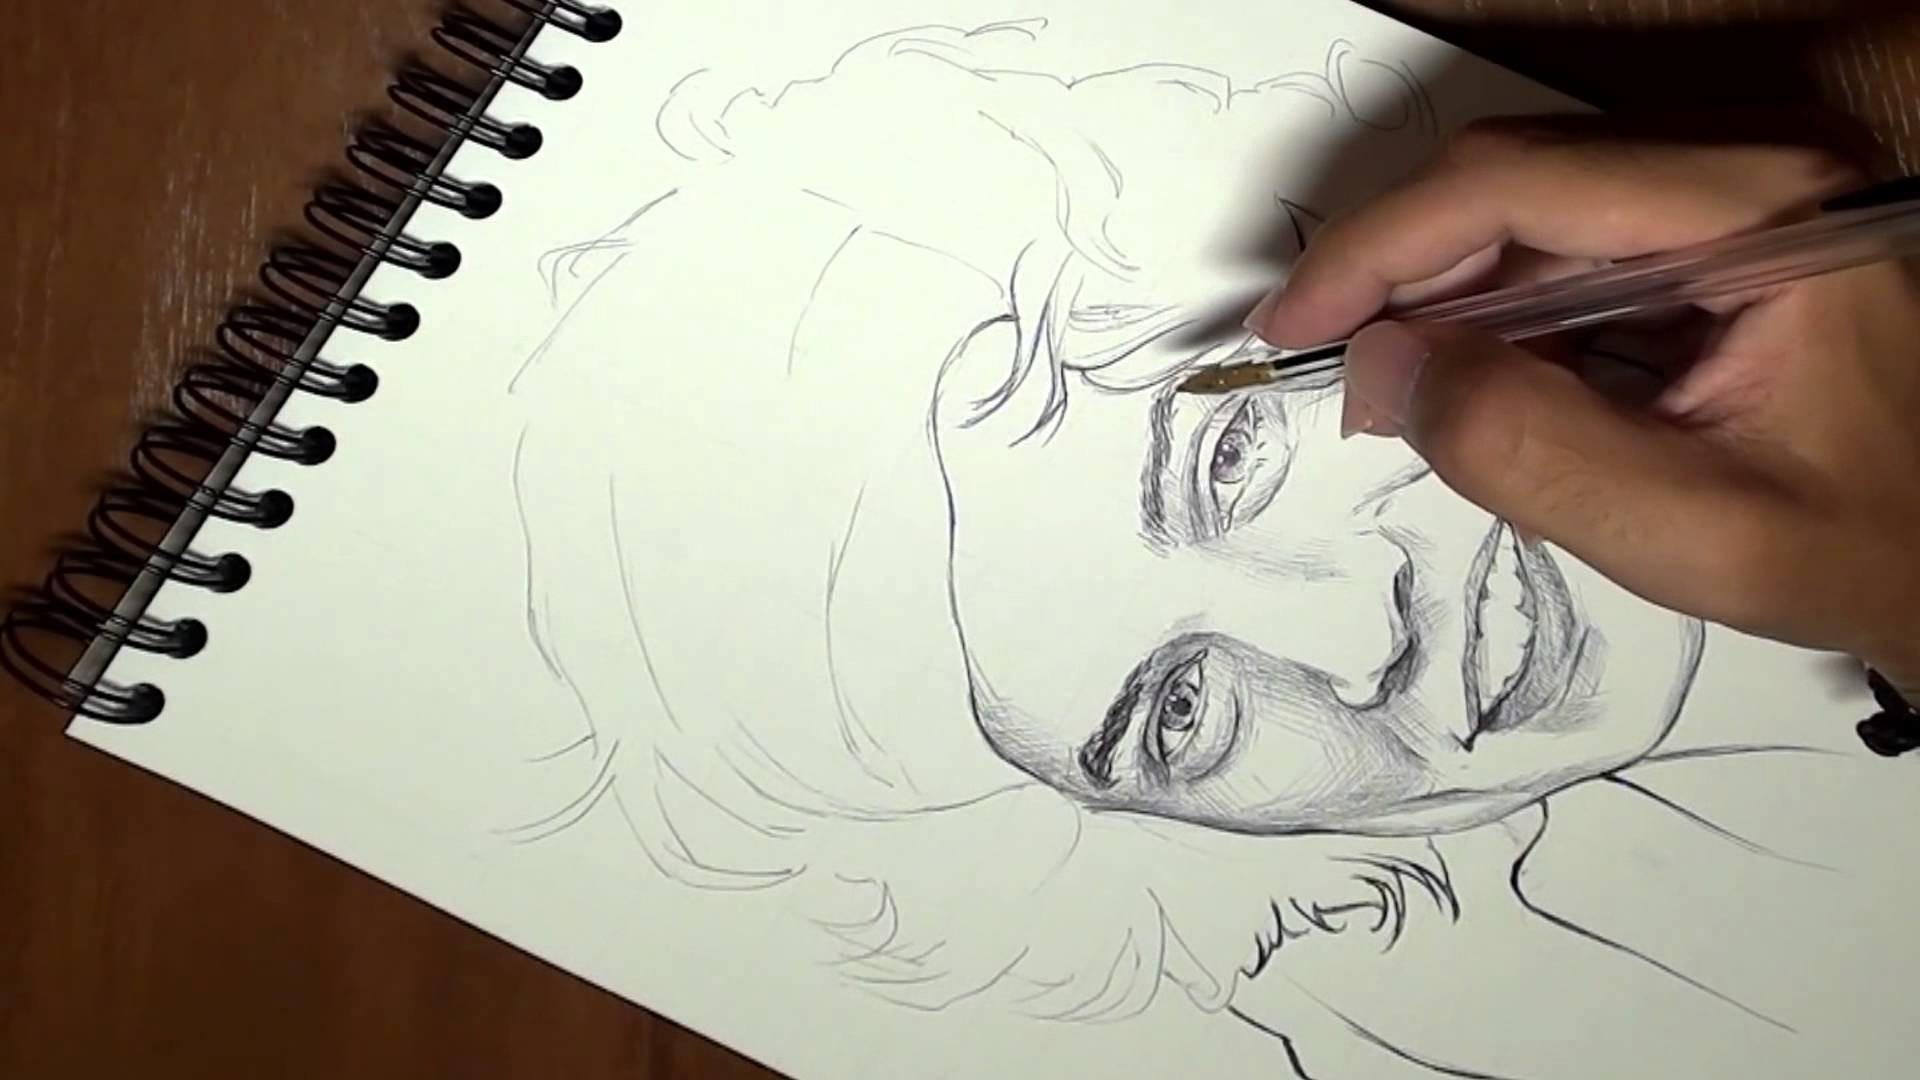 Cómo dibujar a Harry Styles en 3 minutos timelapse (How to draw Harry Styles in 3 minutes)